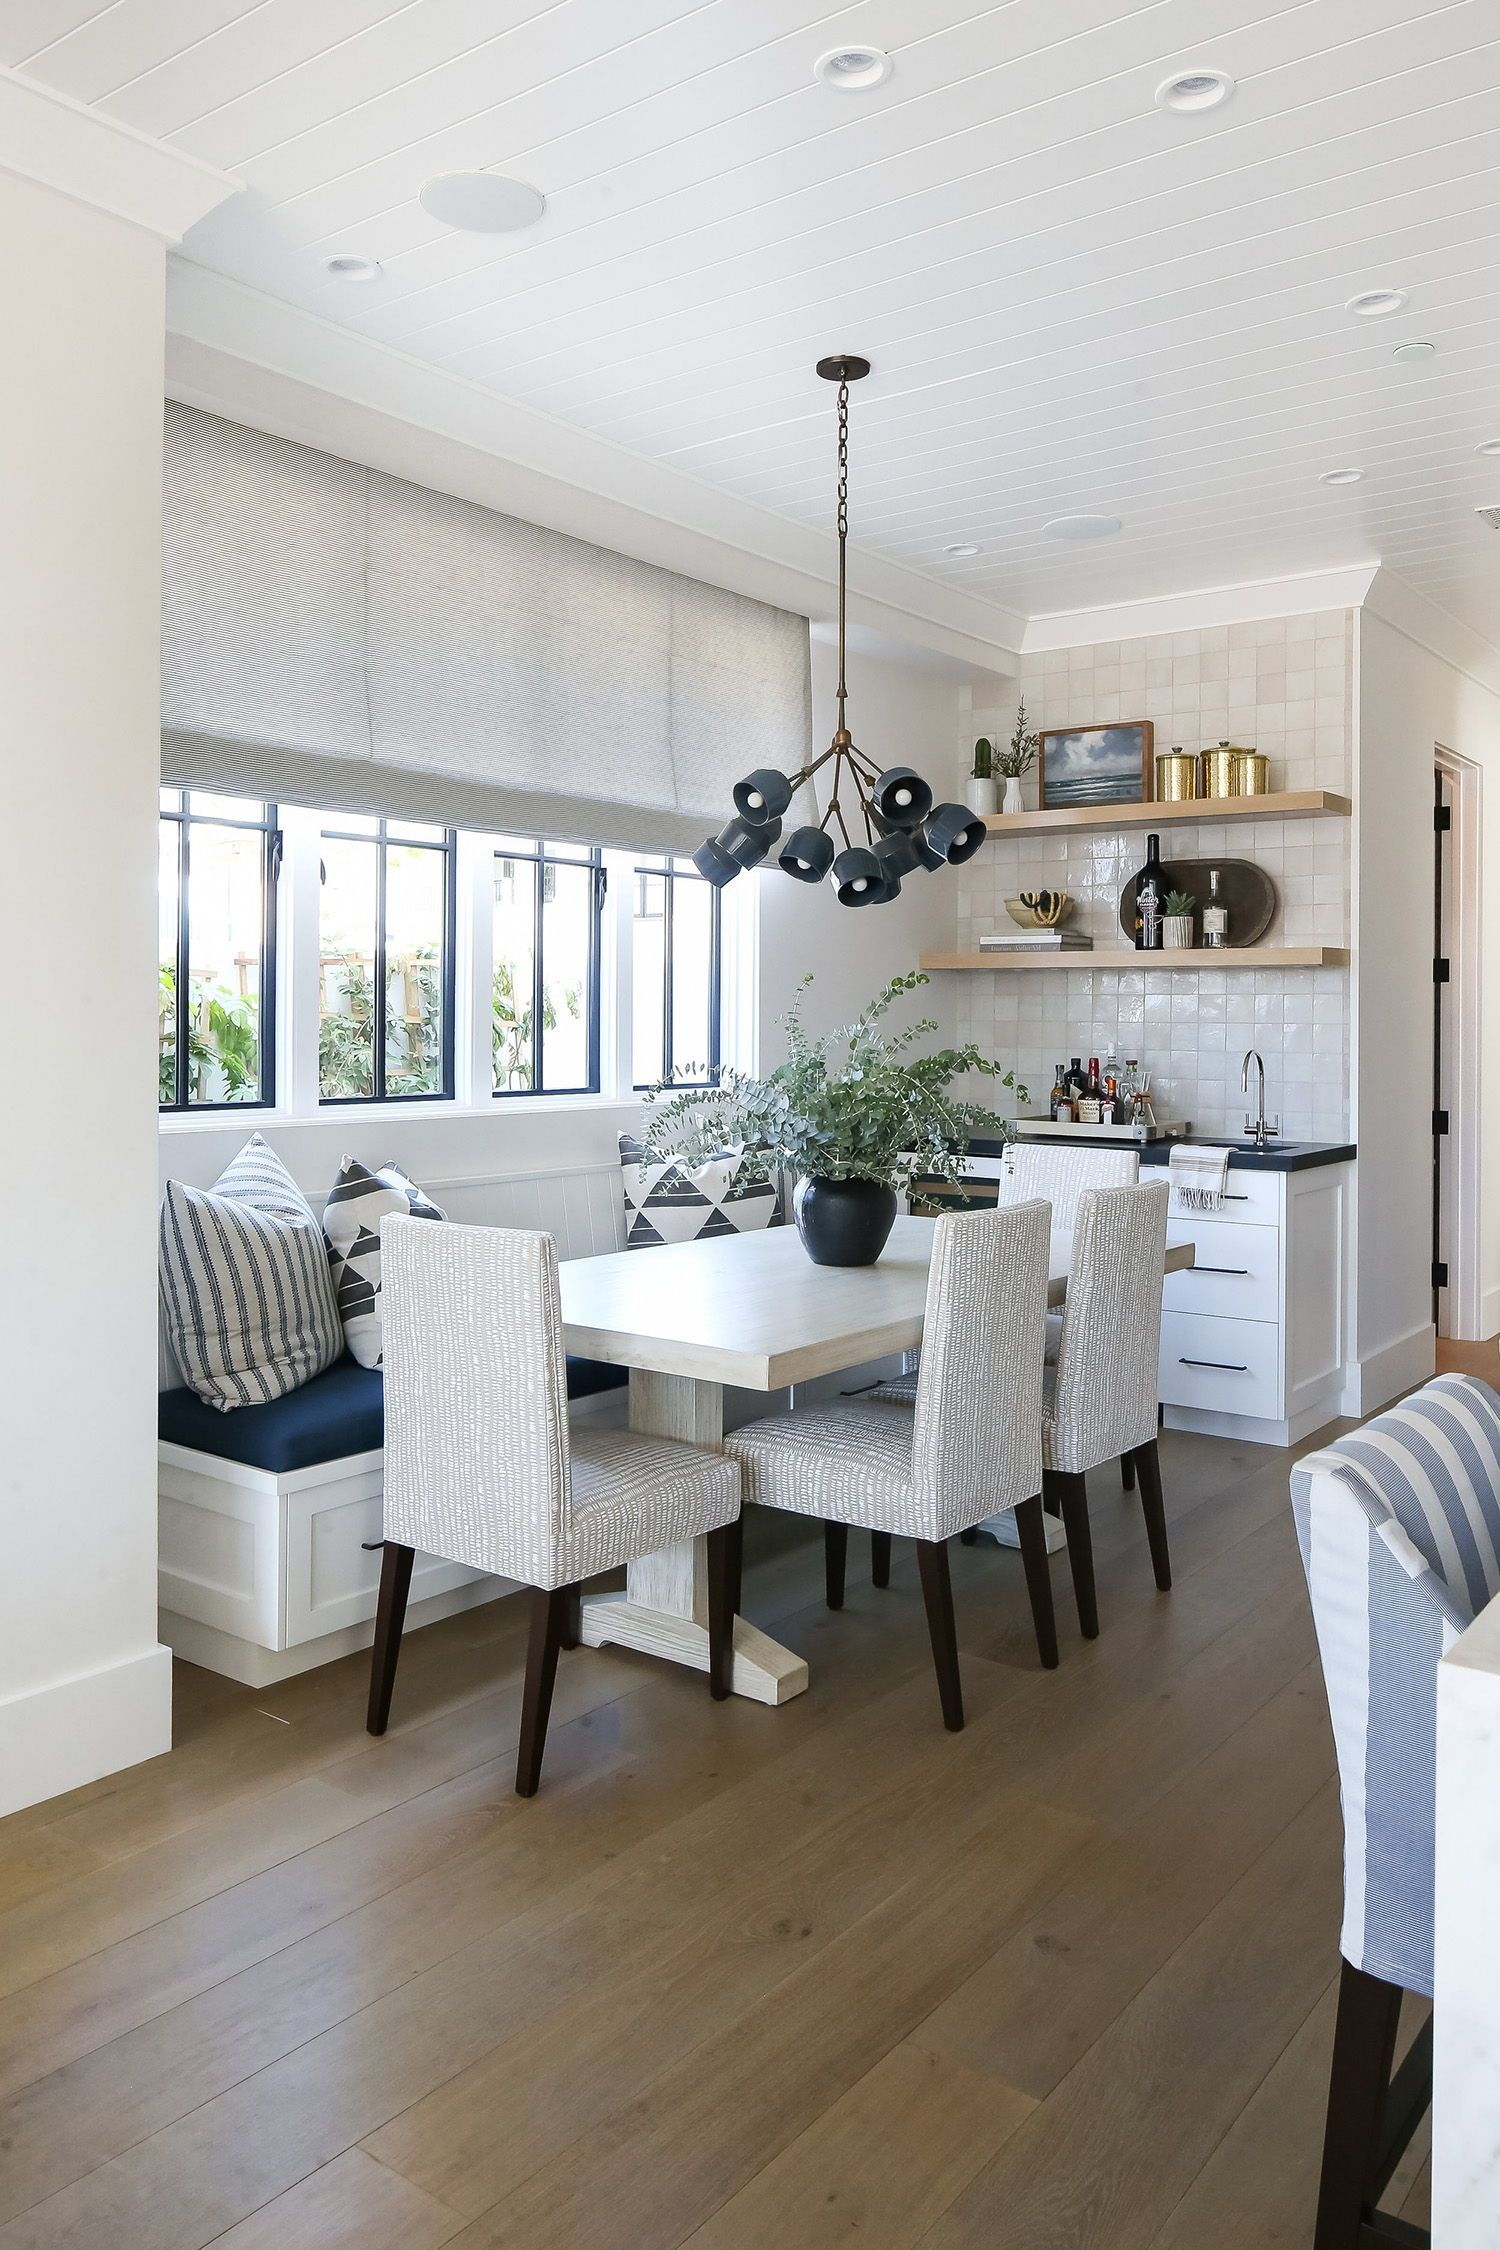 An inviting beach house with soothing living spaces in Newport Beach